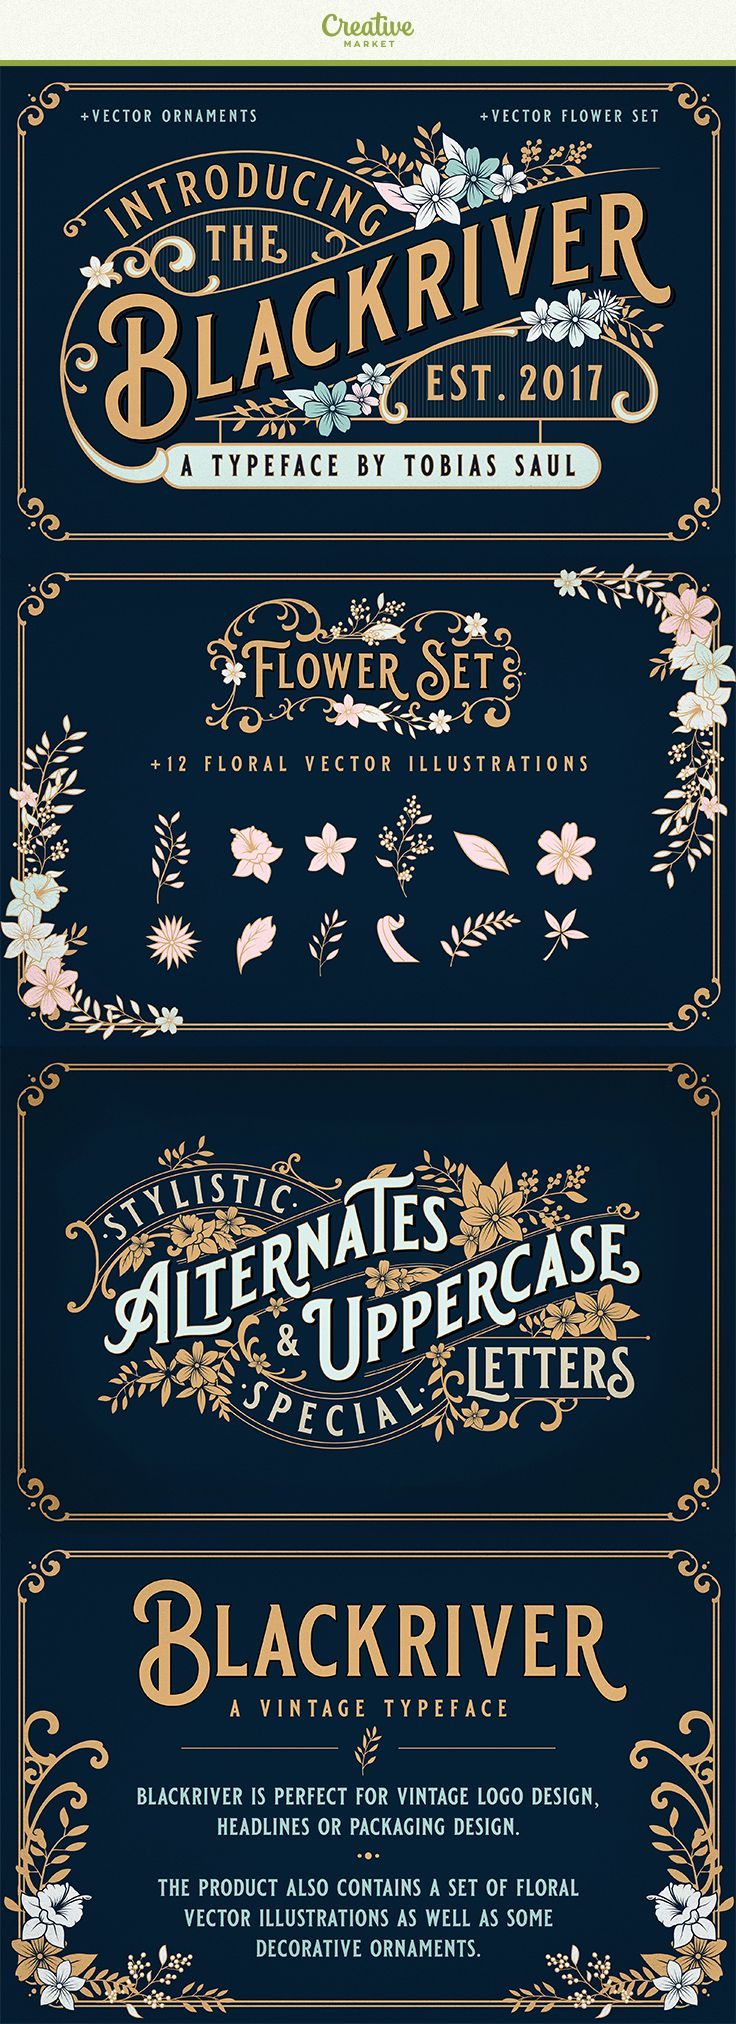 Blackriveris inspired by vintage packaging and advertising from the early 20th century. It is perfect for vintage logo design, headlines or packaging design. The product also includes a set of floral vector illustrations as well as some decorative ornaments. This combination allows you to easily build beautiful vintage designs in a short time. #affiliate